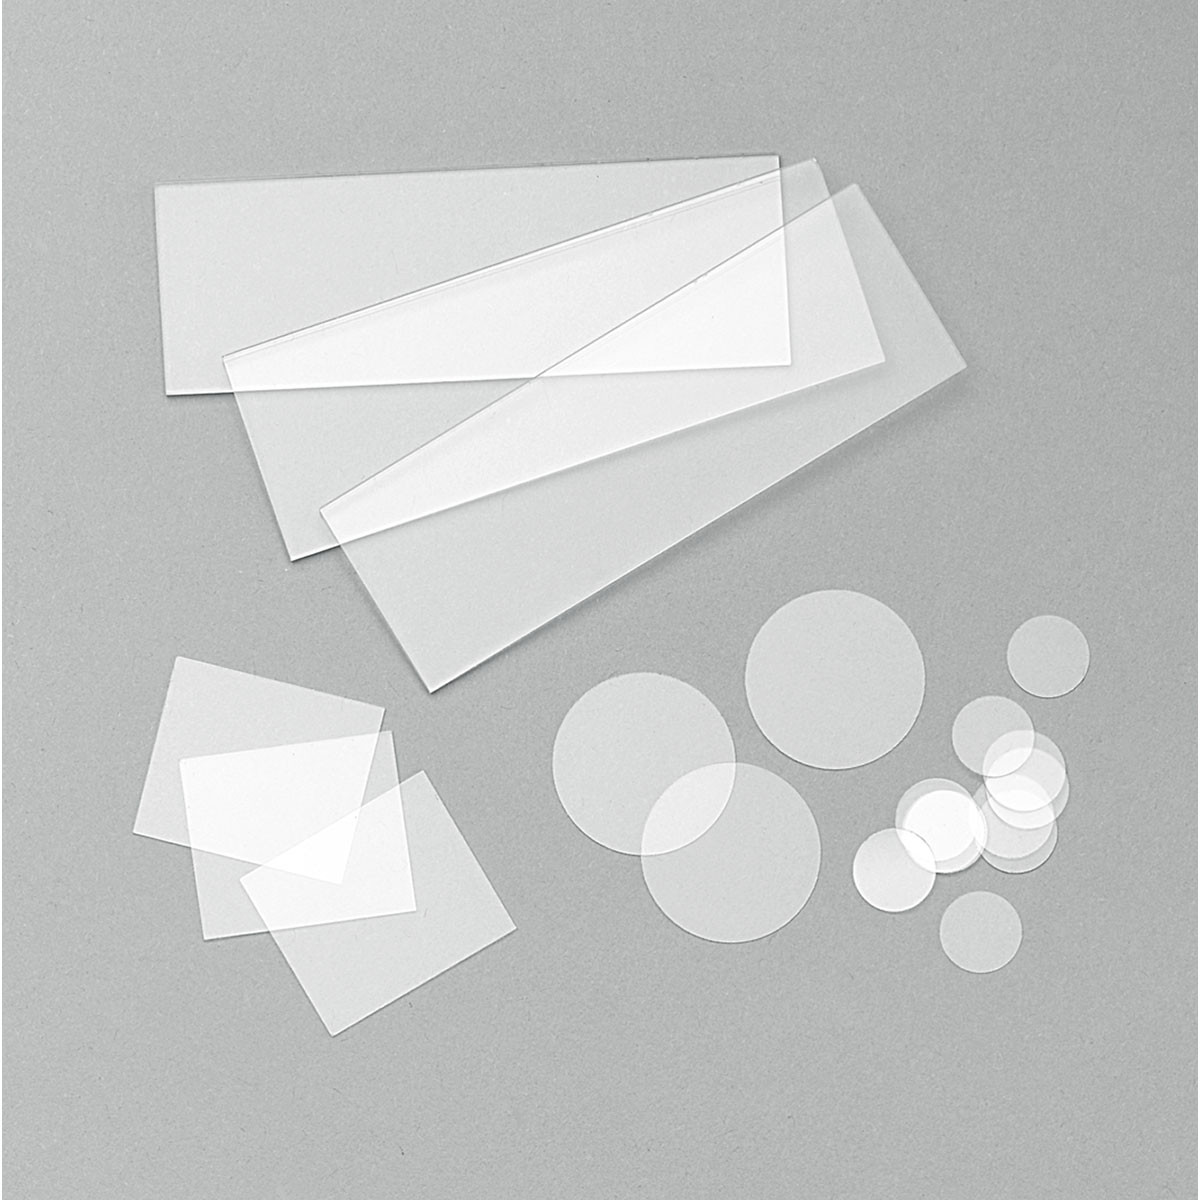 Cover Slips No. 1 22x32mm (100/ pack)